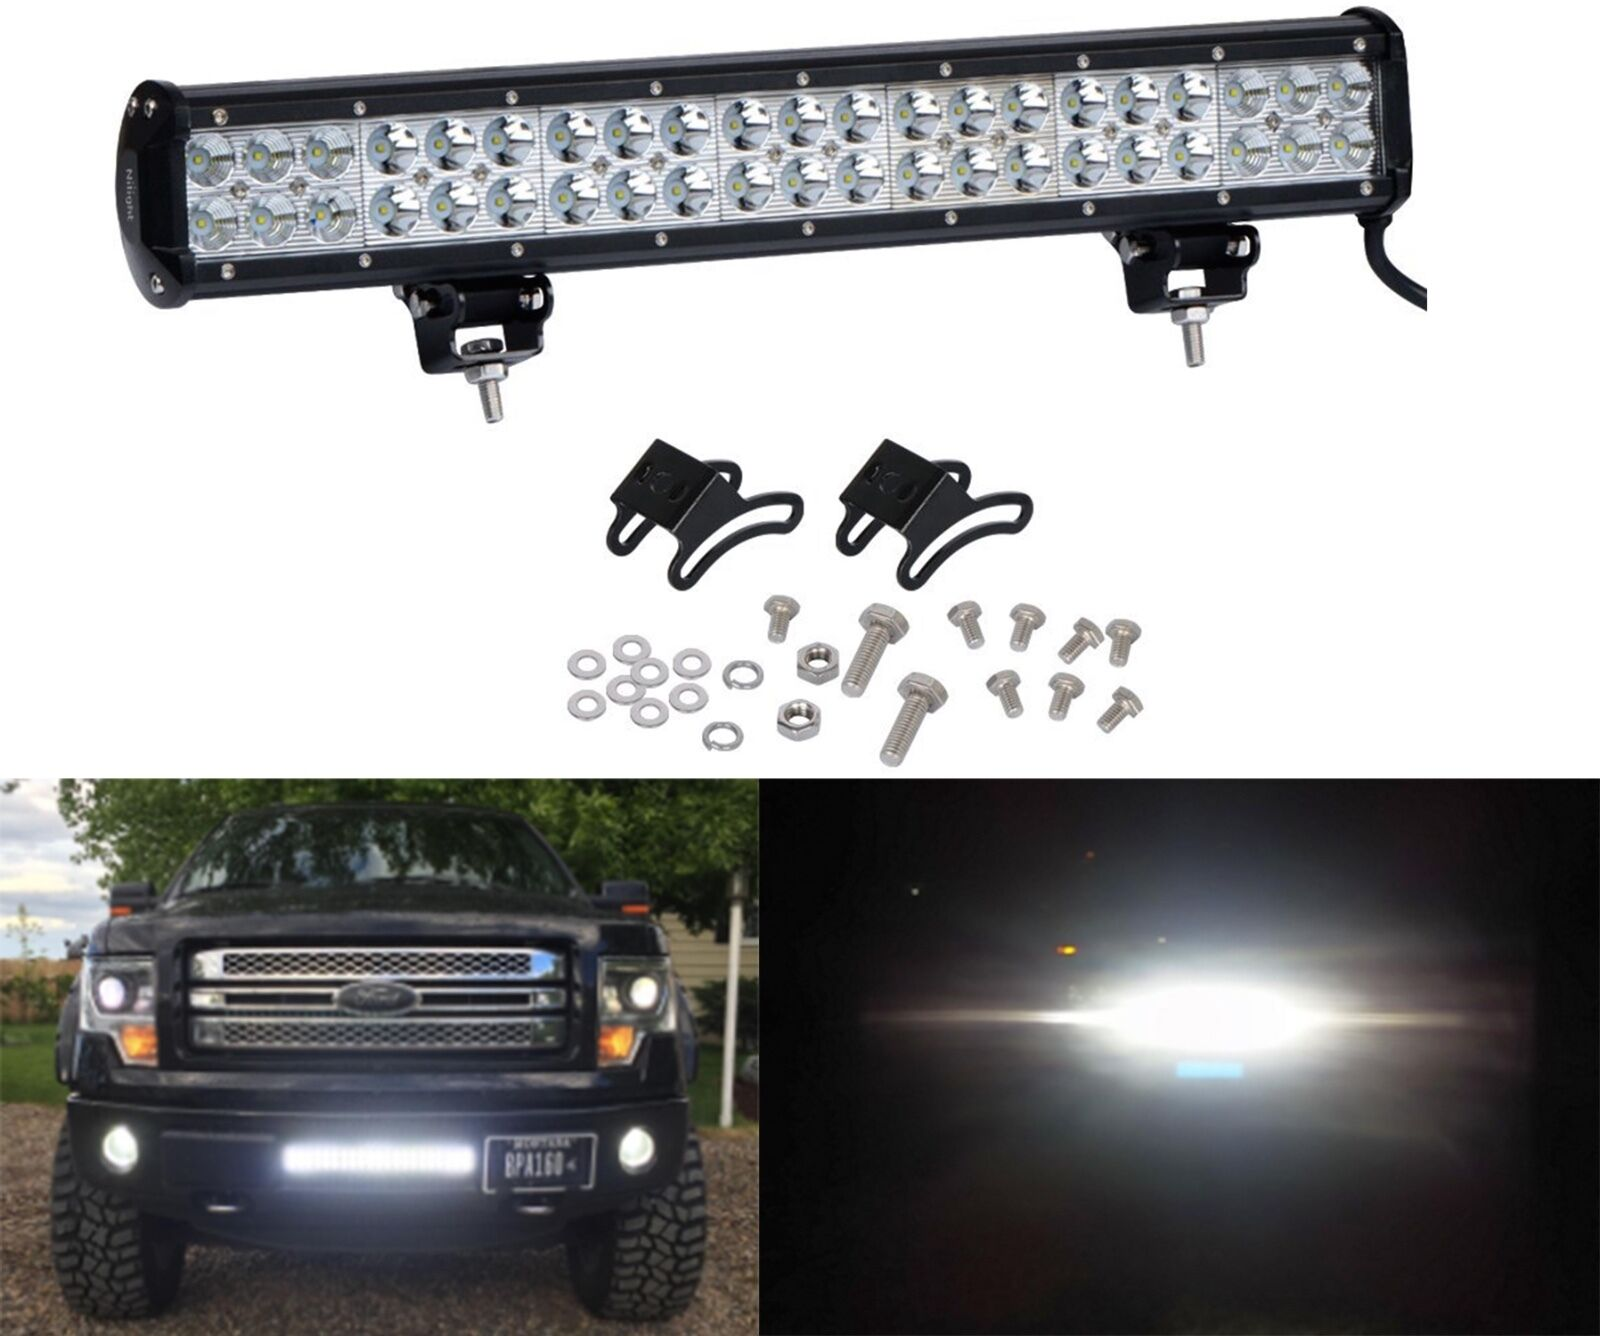 Nilight 126w Light Bar Led 20 Spot Combo Beam Work Off Road New Wiring Harness Install Free Shipping 1 Of 12free